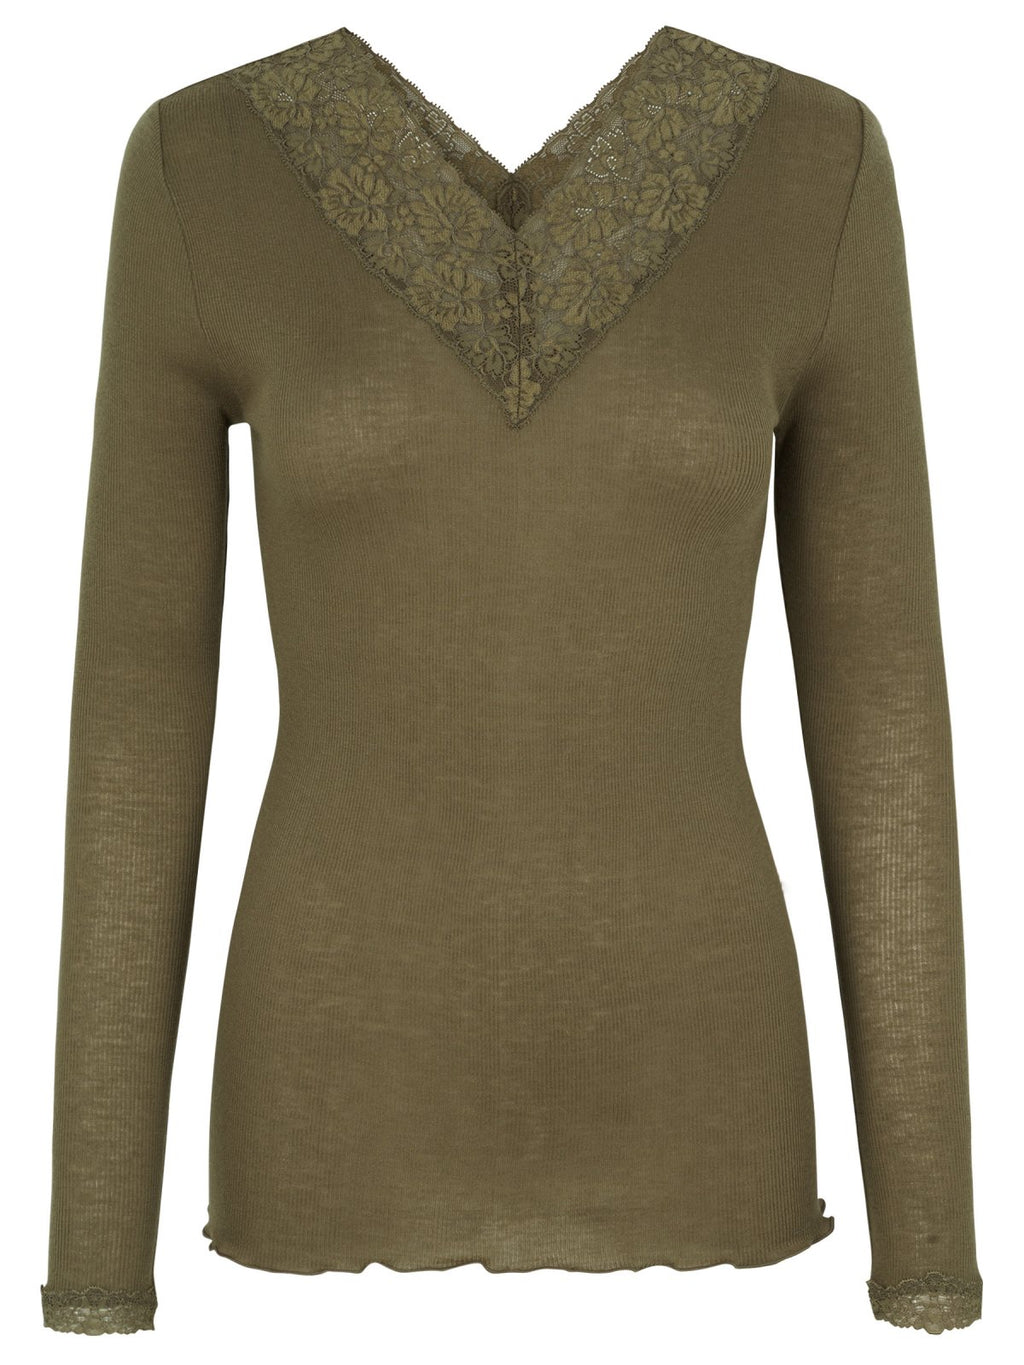 Rosemunde - wool blouse V-neck lace military olive green